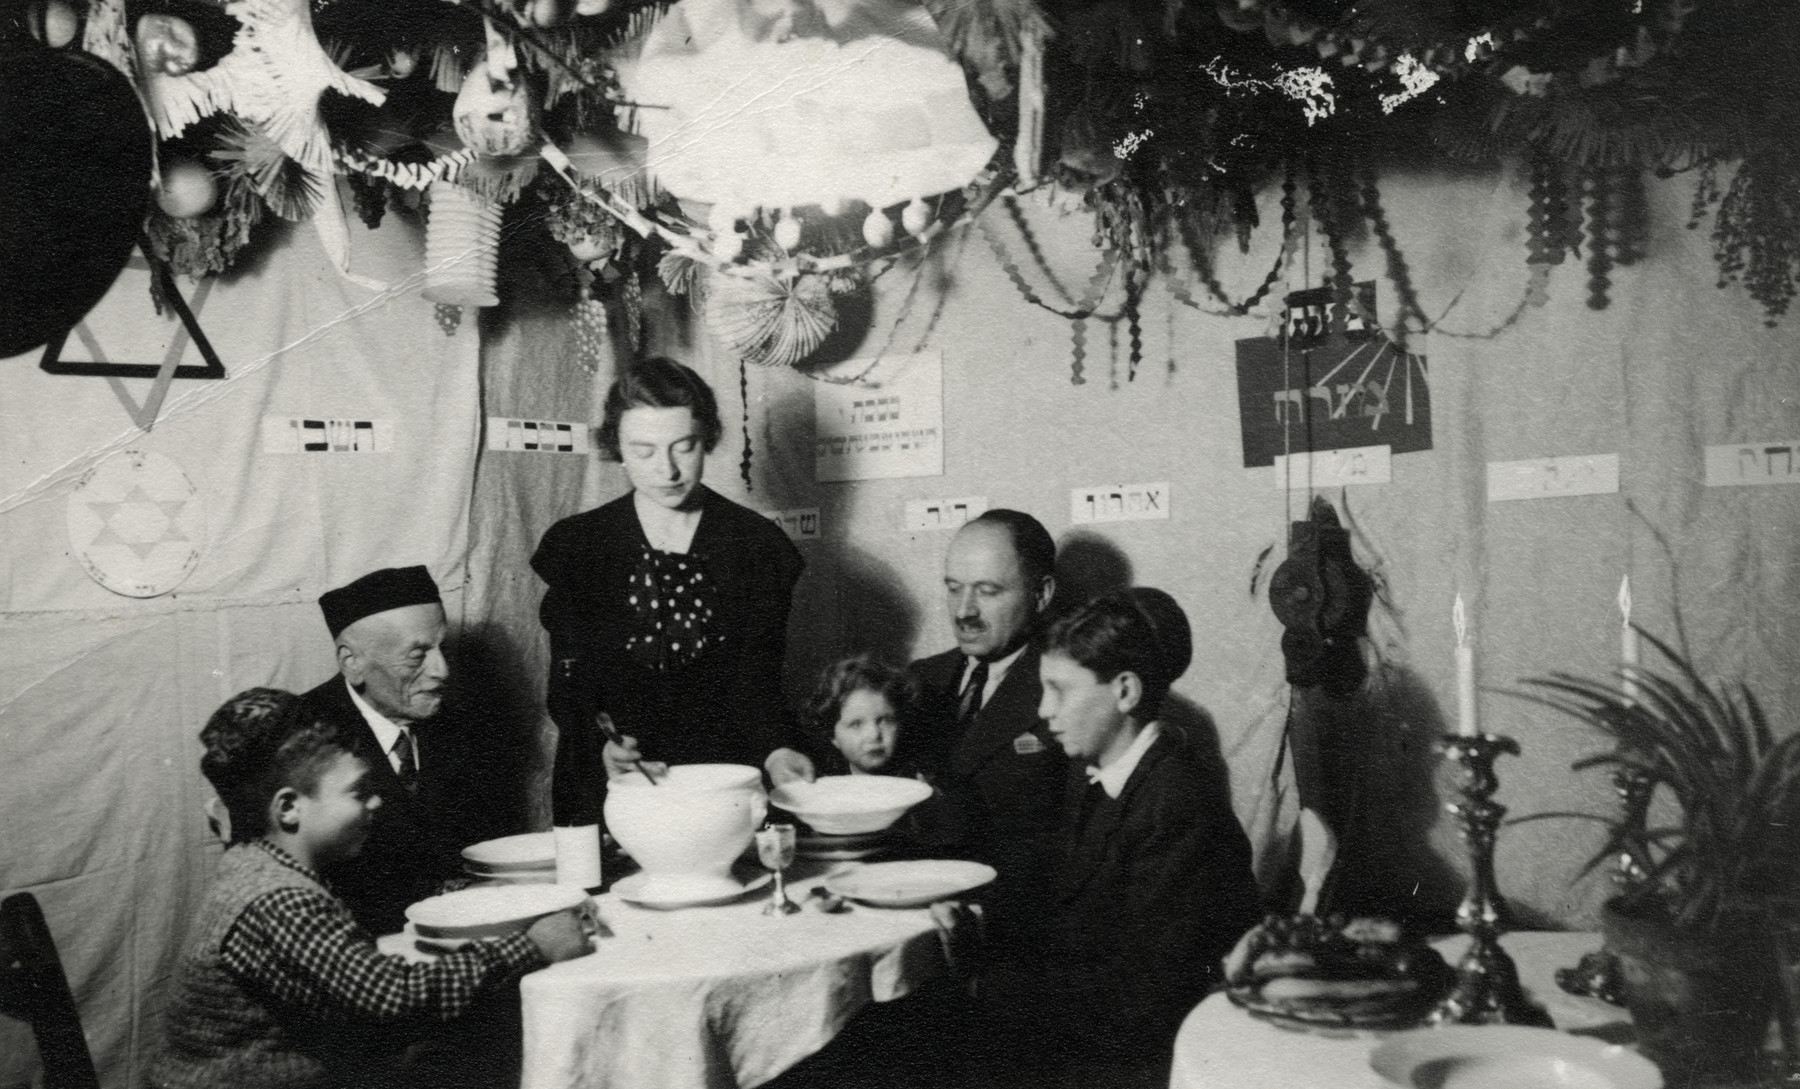 The Reutlinger family celebrates Sukkot in their home in Pforzheim.  Pictured are Erich Reutlinger, Maurits Hamburger, Elsa, Ruth, Louis and Shlomo Reutlinger.